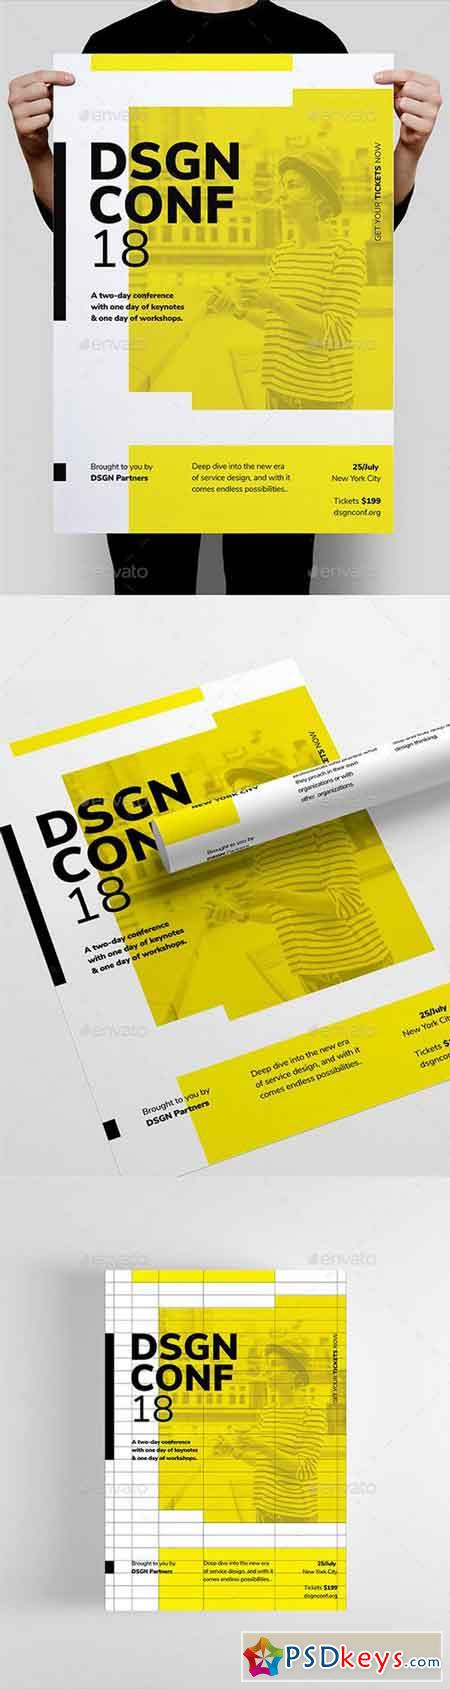 DSGN Series 9 Poster Flyer Template 22172392